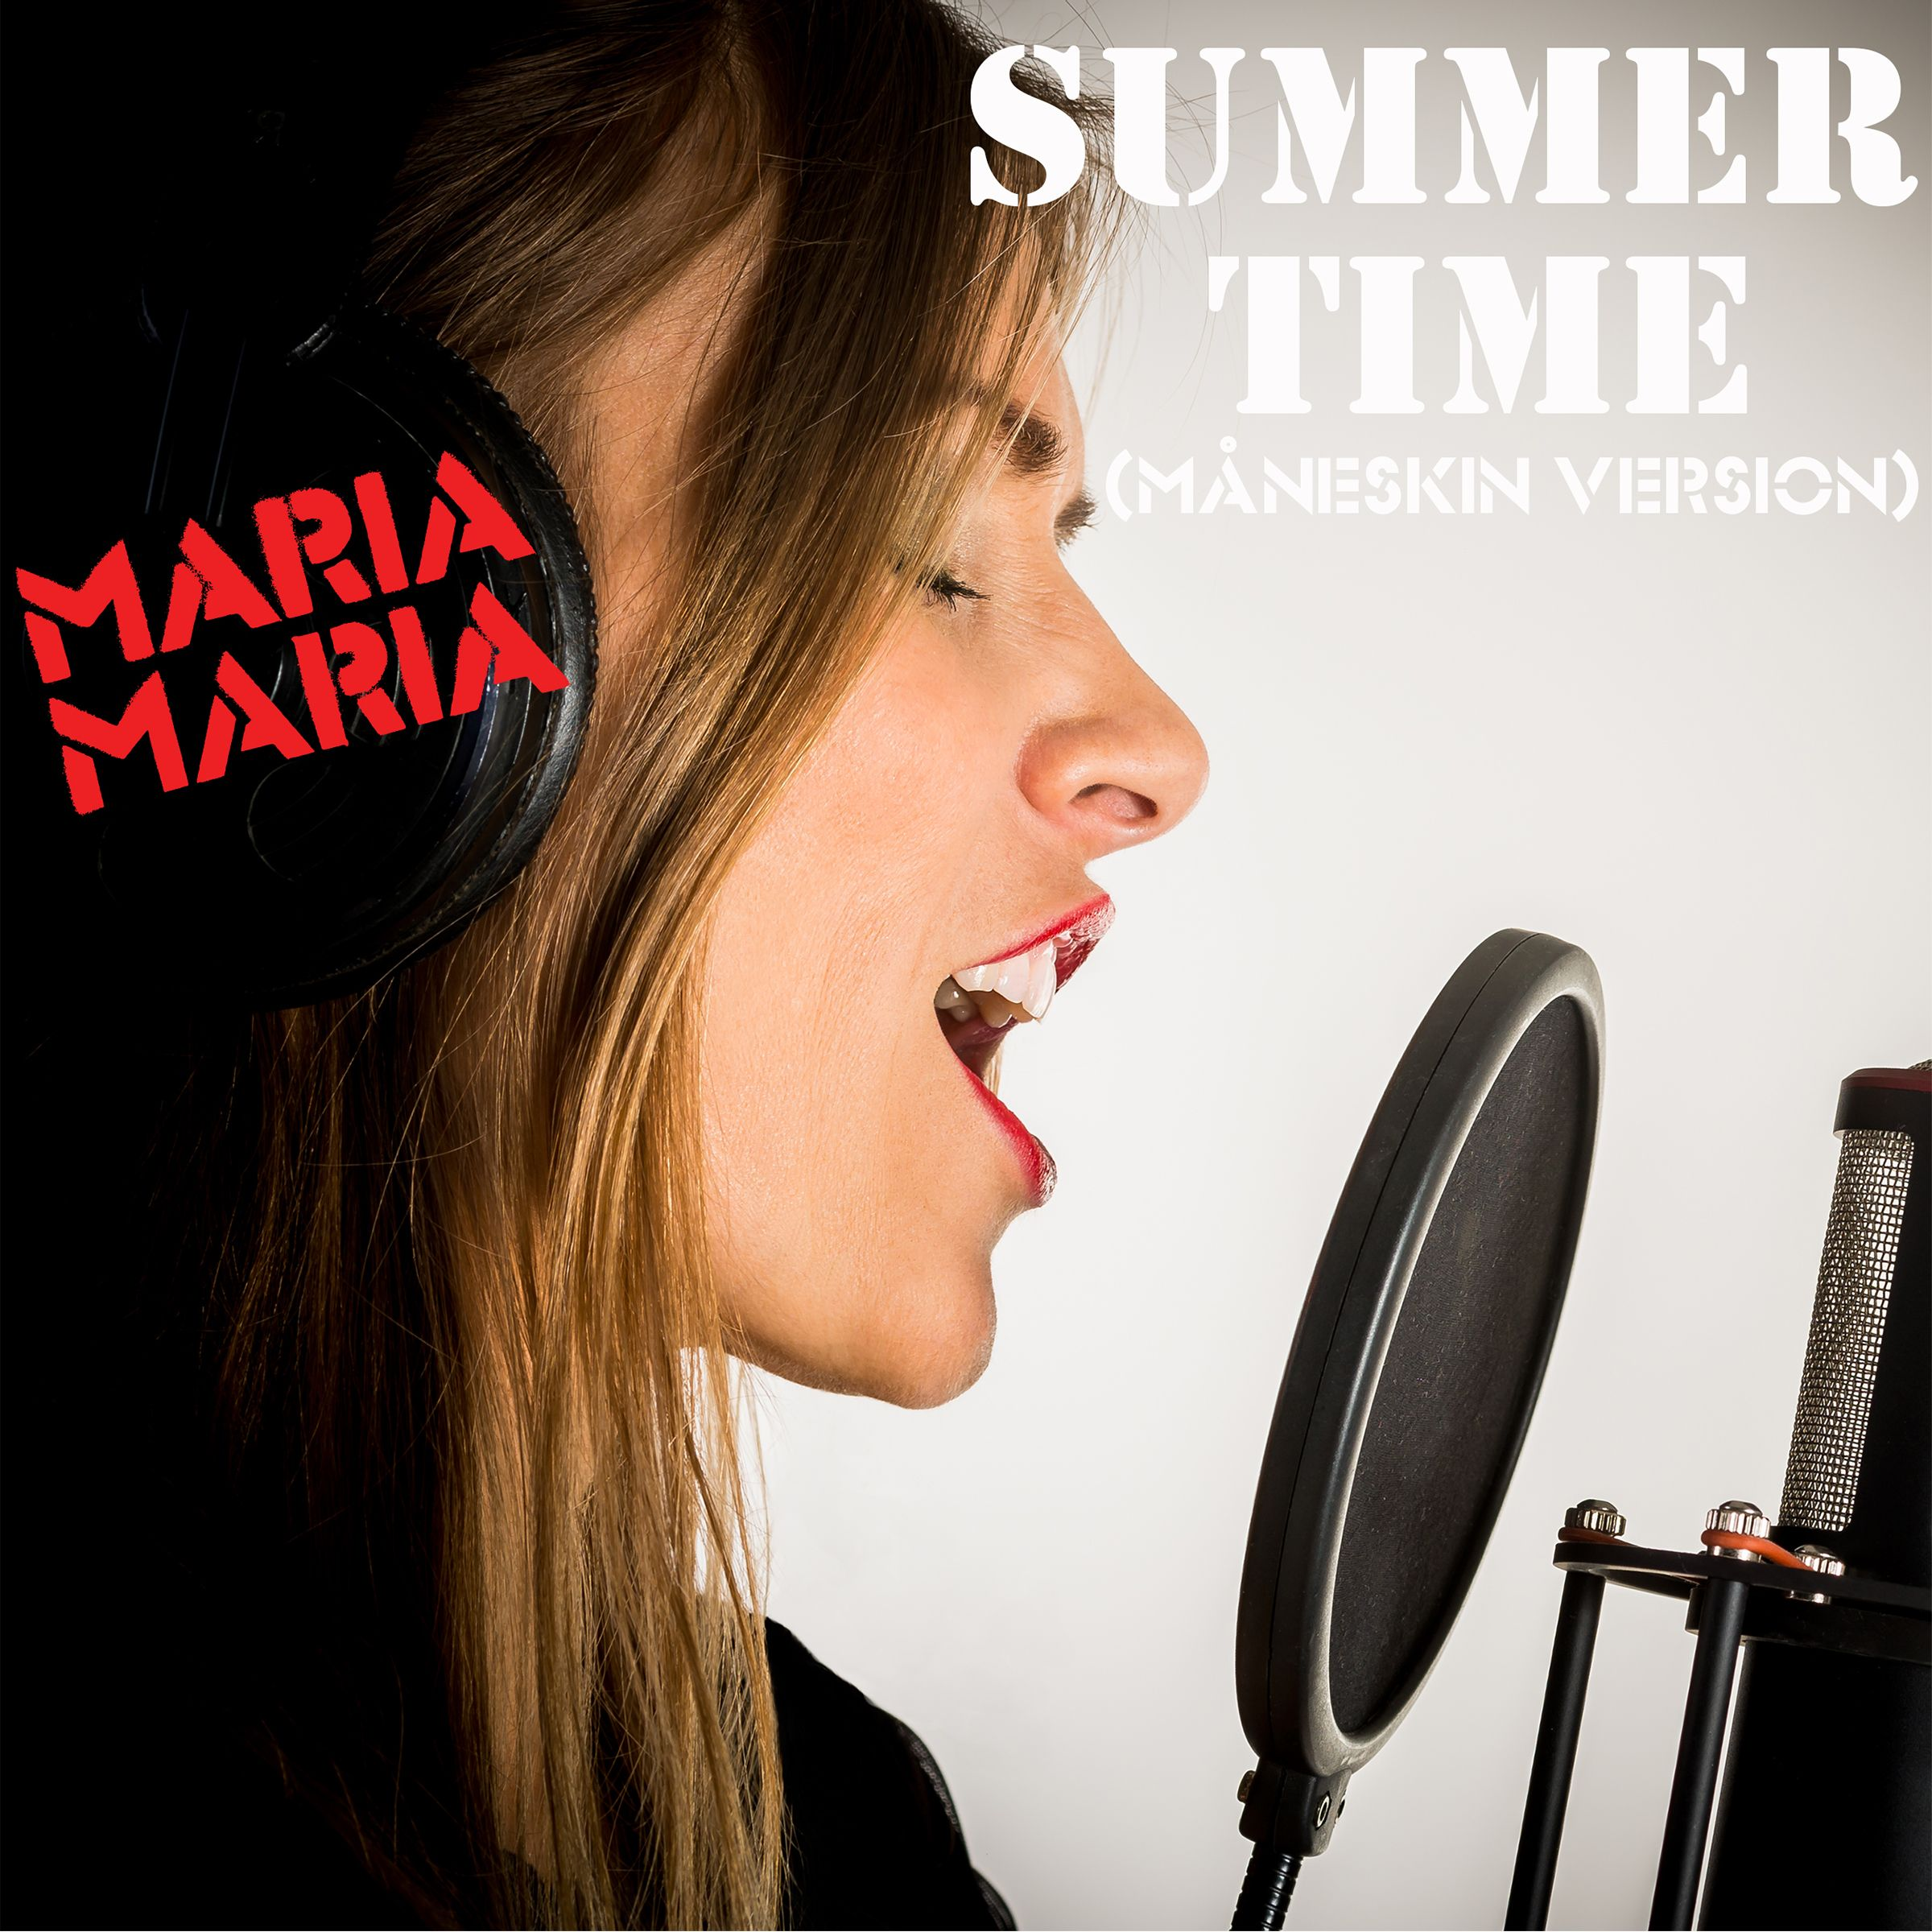 "SINGLERELEASE 25/6 :  ""SUMMERTIME (Måneskin Version)"" m MARIA MARIA FIND SANGEN HER: https://itunes.apple.com/.../summertime.../id1011757048 Spotify: https://play.spotify.com/album/0xIox10YqDVfxcyjAshgXZ #music #summerhit #summertime #radio #hit"